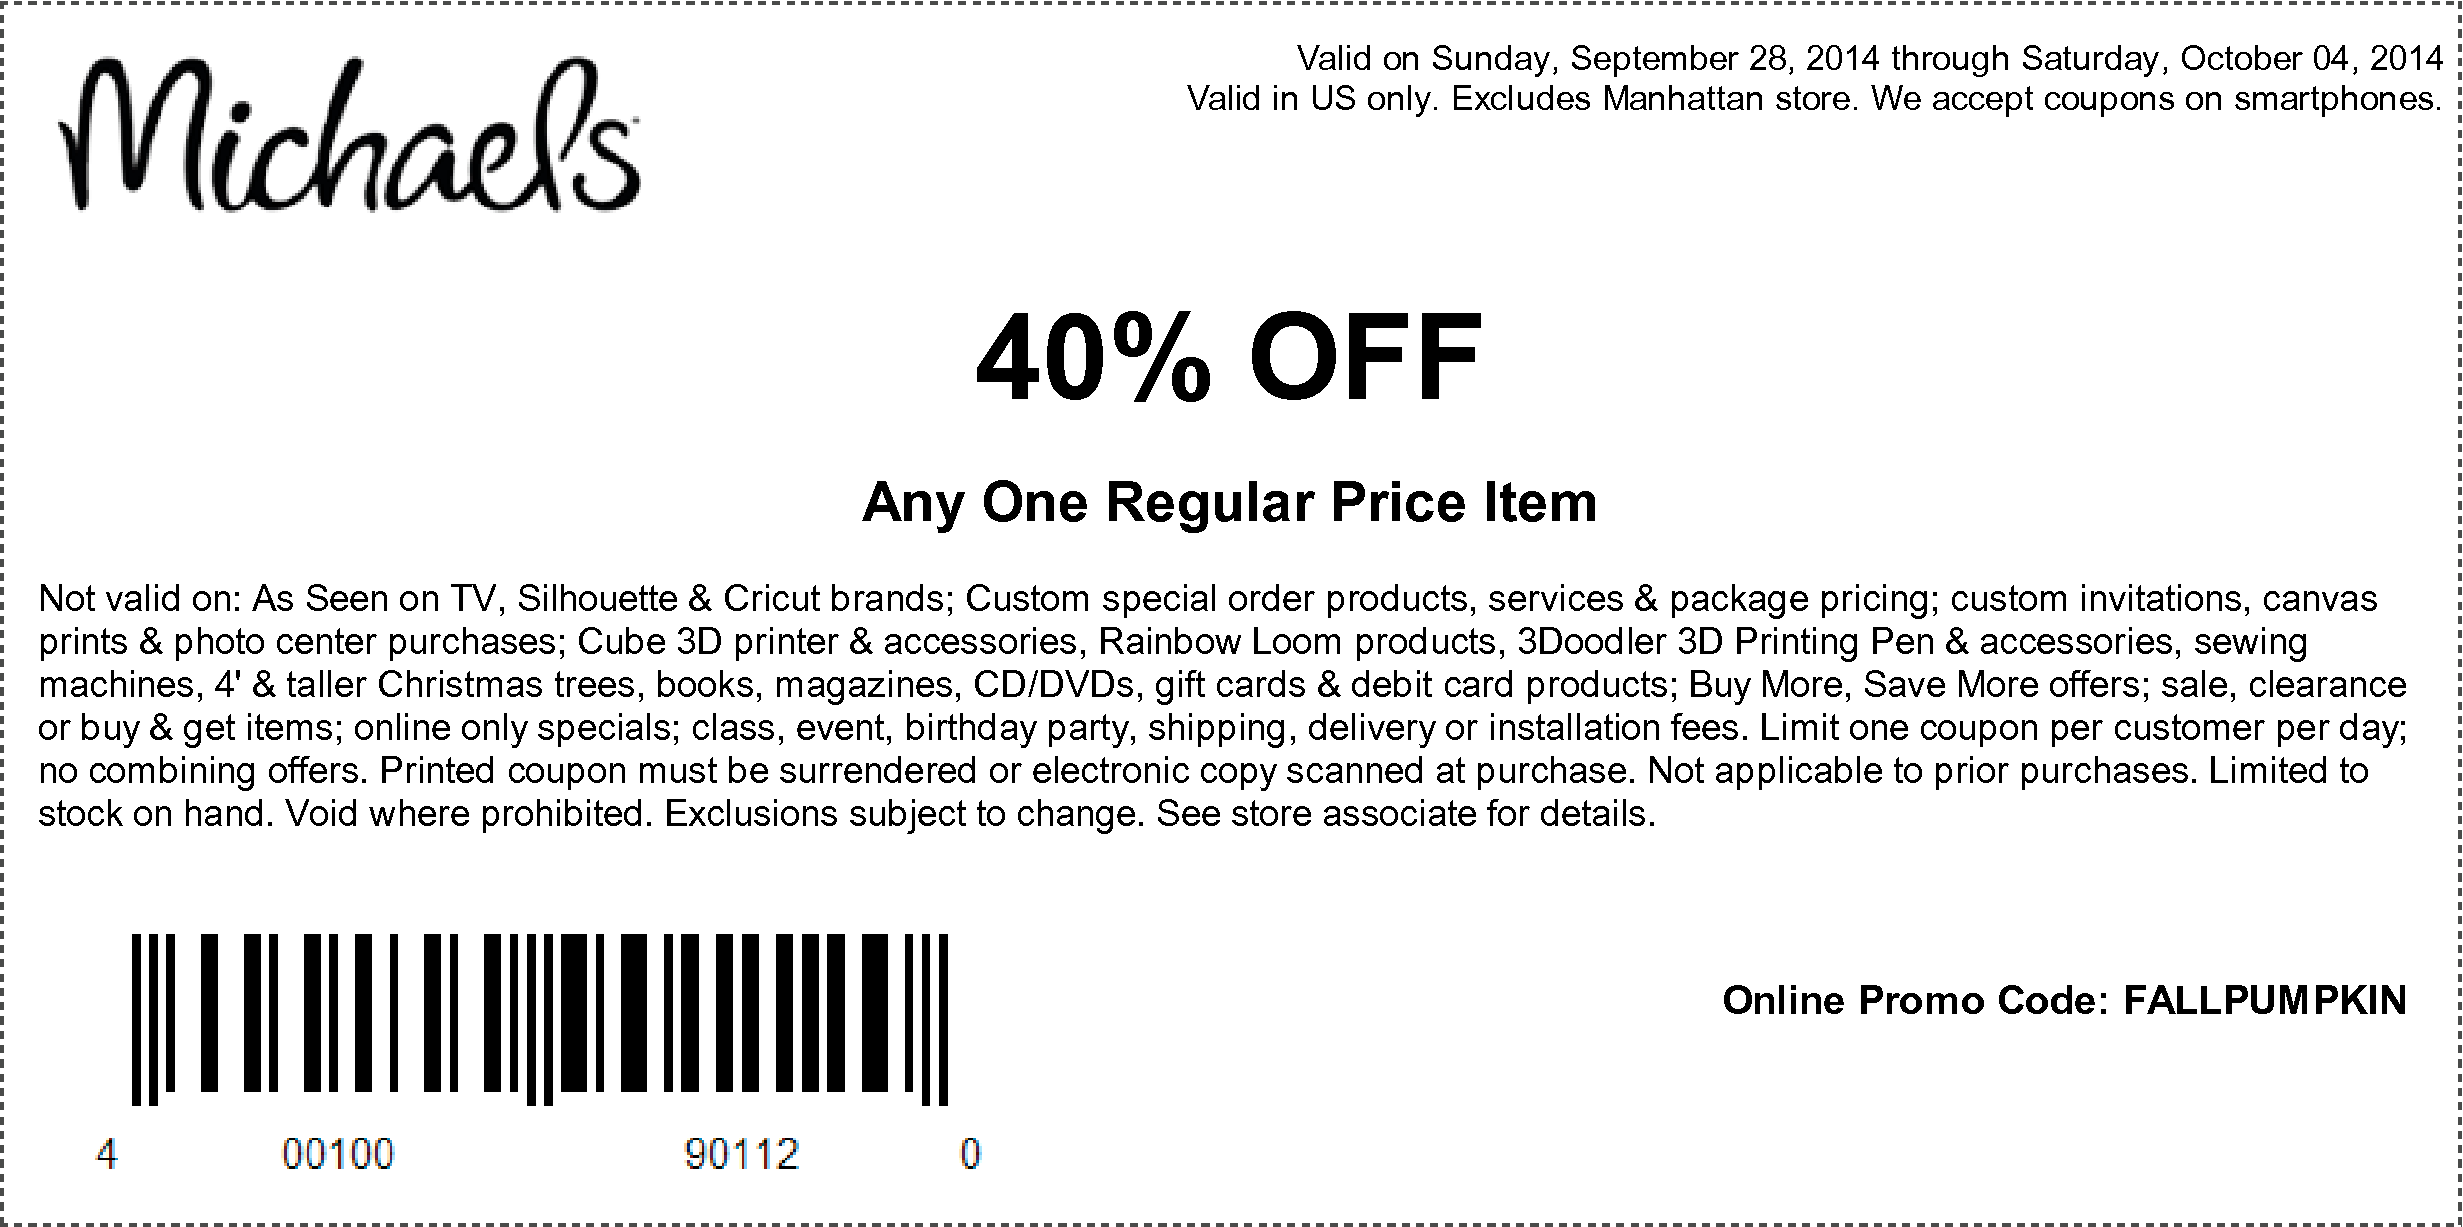 photograph about Osh Coupons Printable named Oct 2 Retail Roundup - Yankee Candle, Jo-Anns, Get together